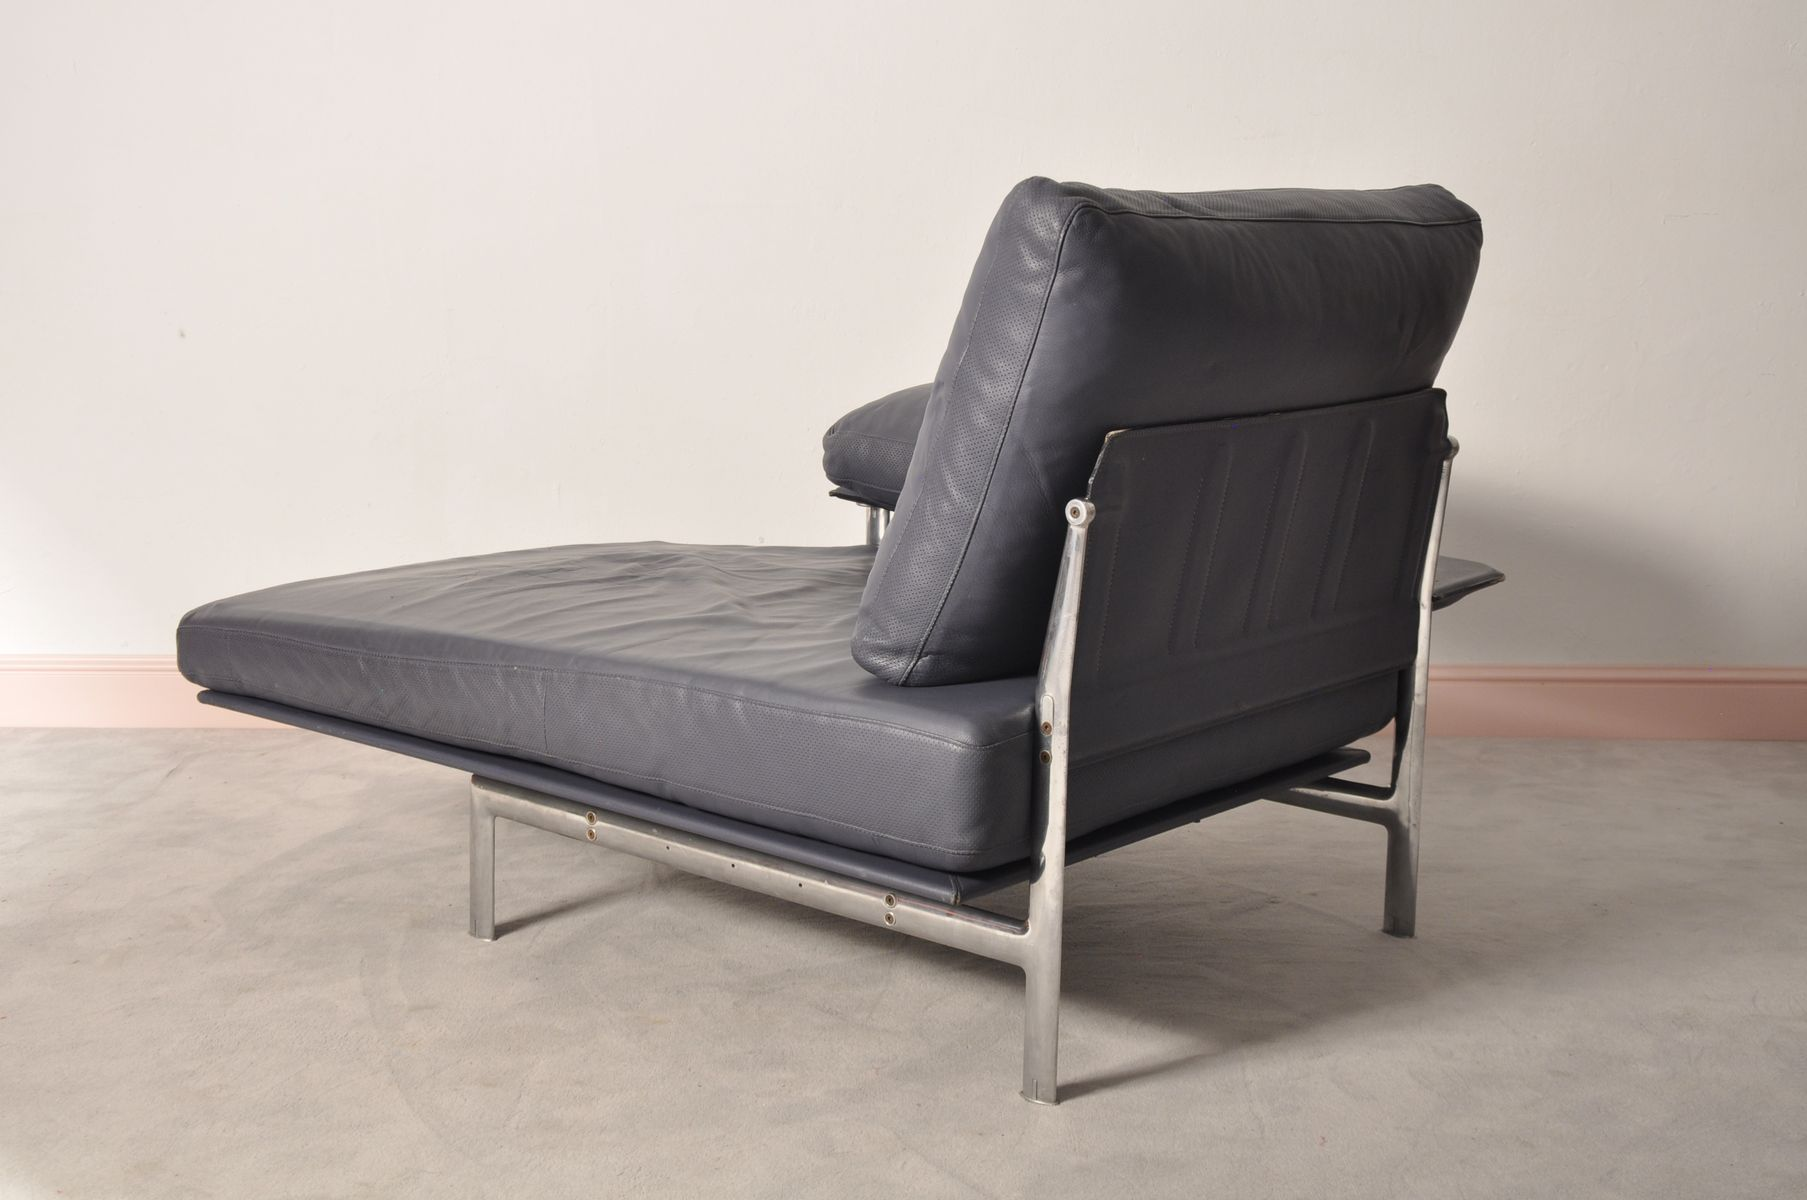 Diesis chaise longue by paolo nava antonio citterio for for Chaise for sale